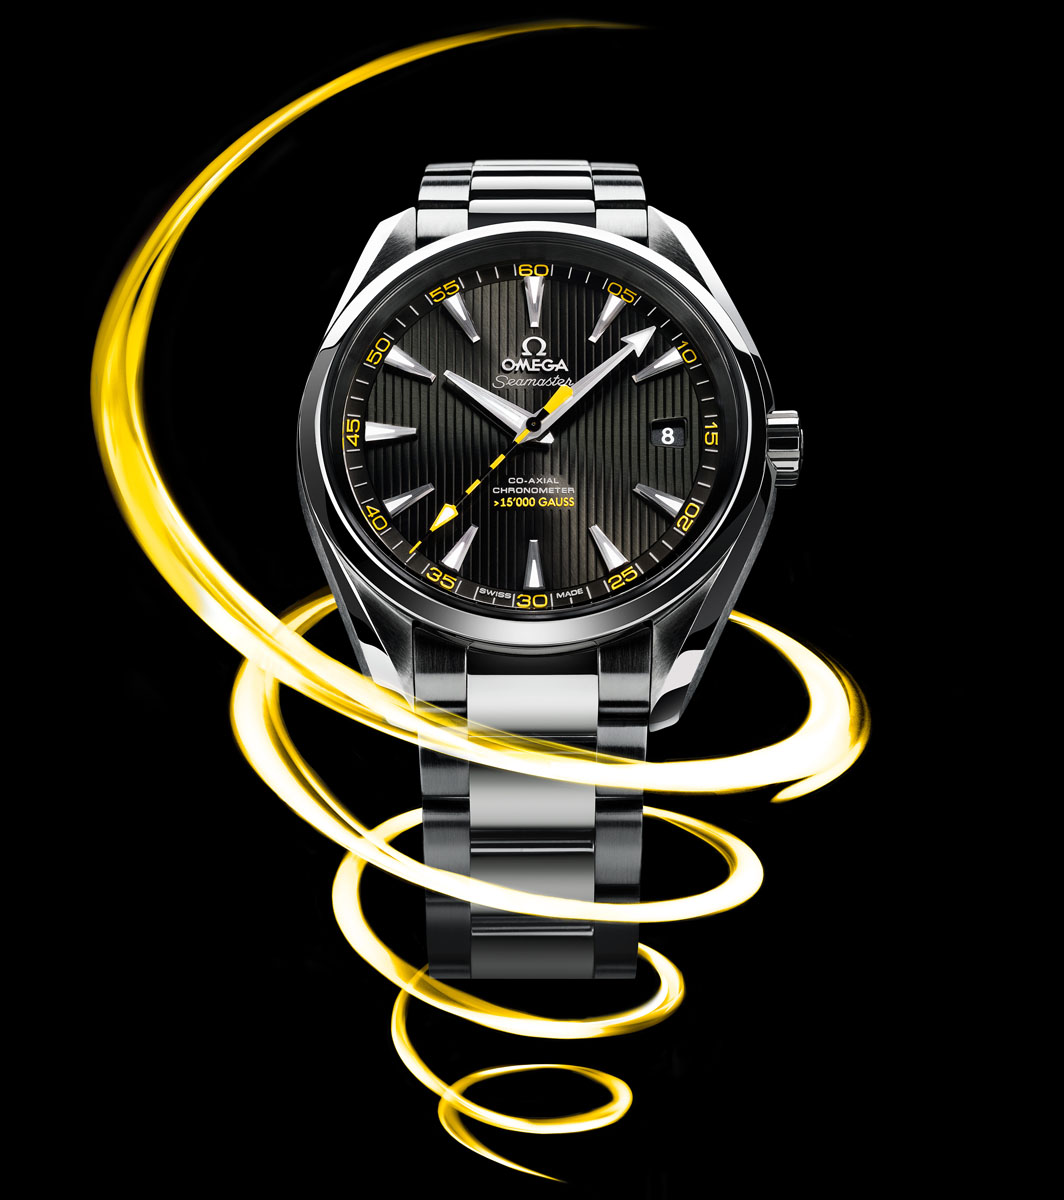 OMEGA Co-Axial 8508, a watch movement resistant to magnetic fields of more than 15,000 gauss